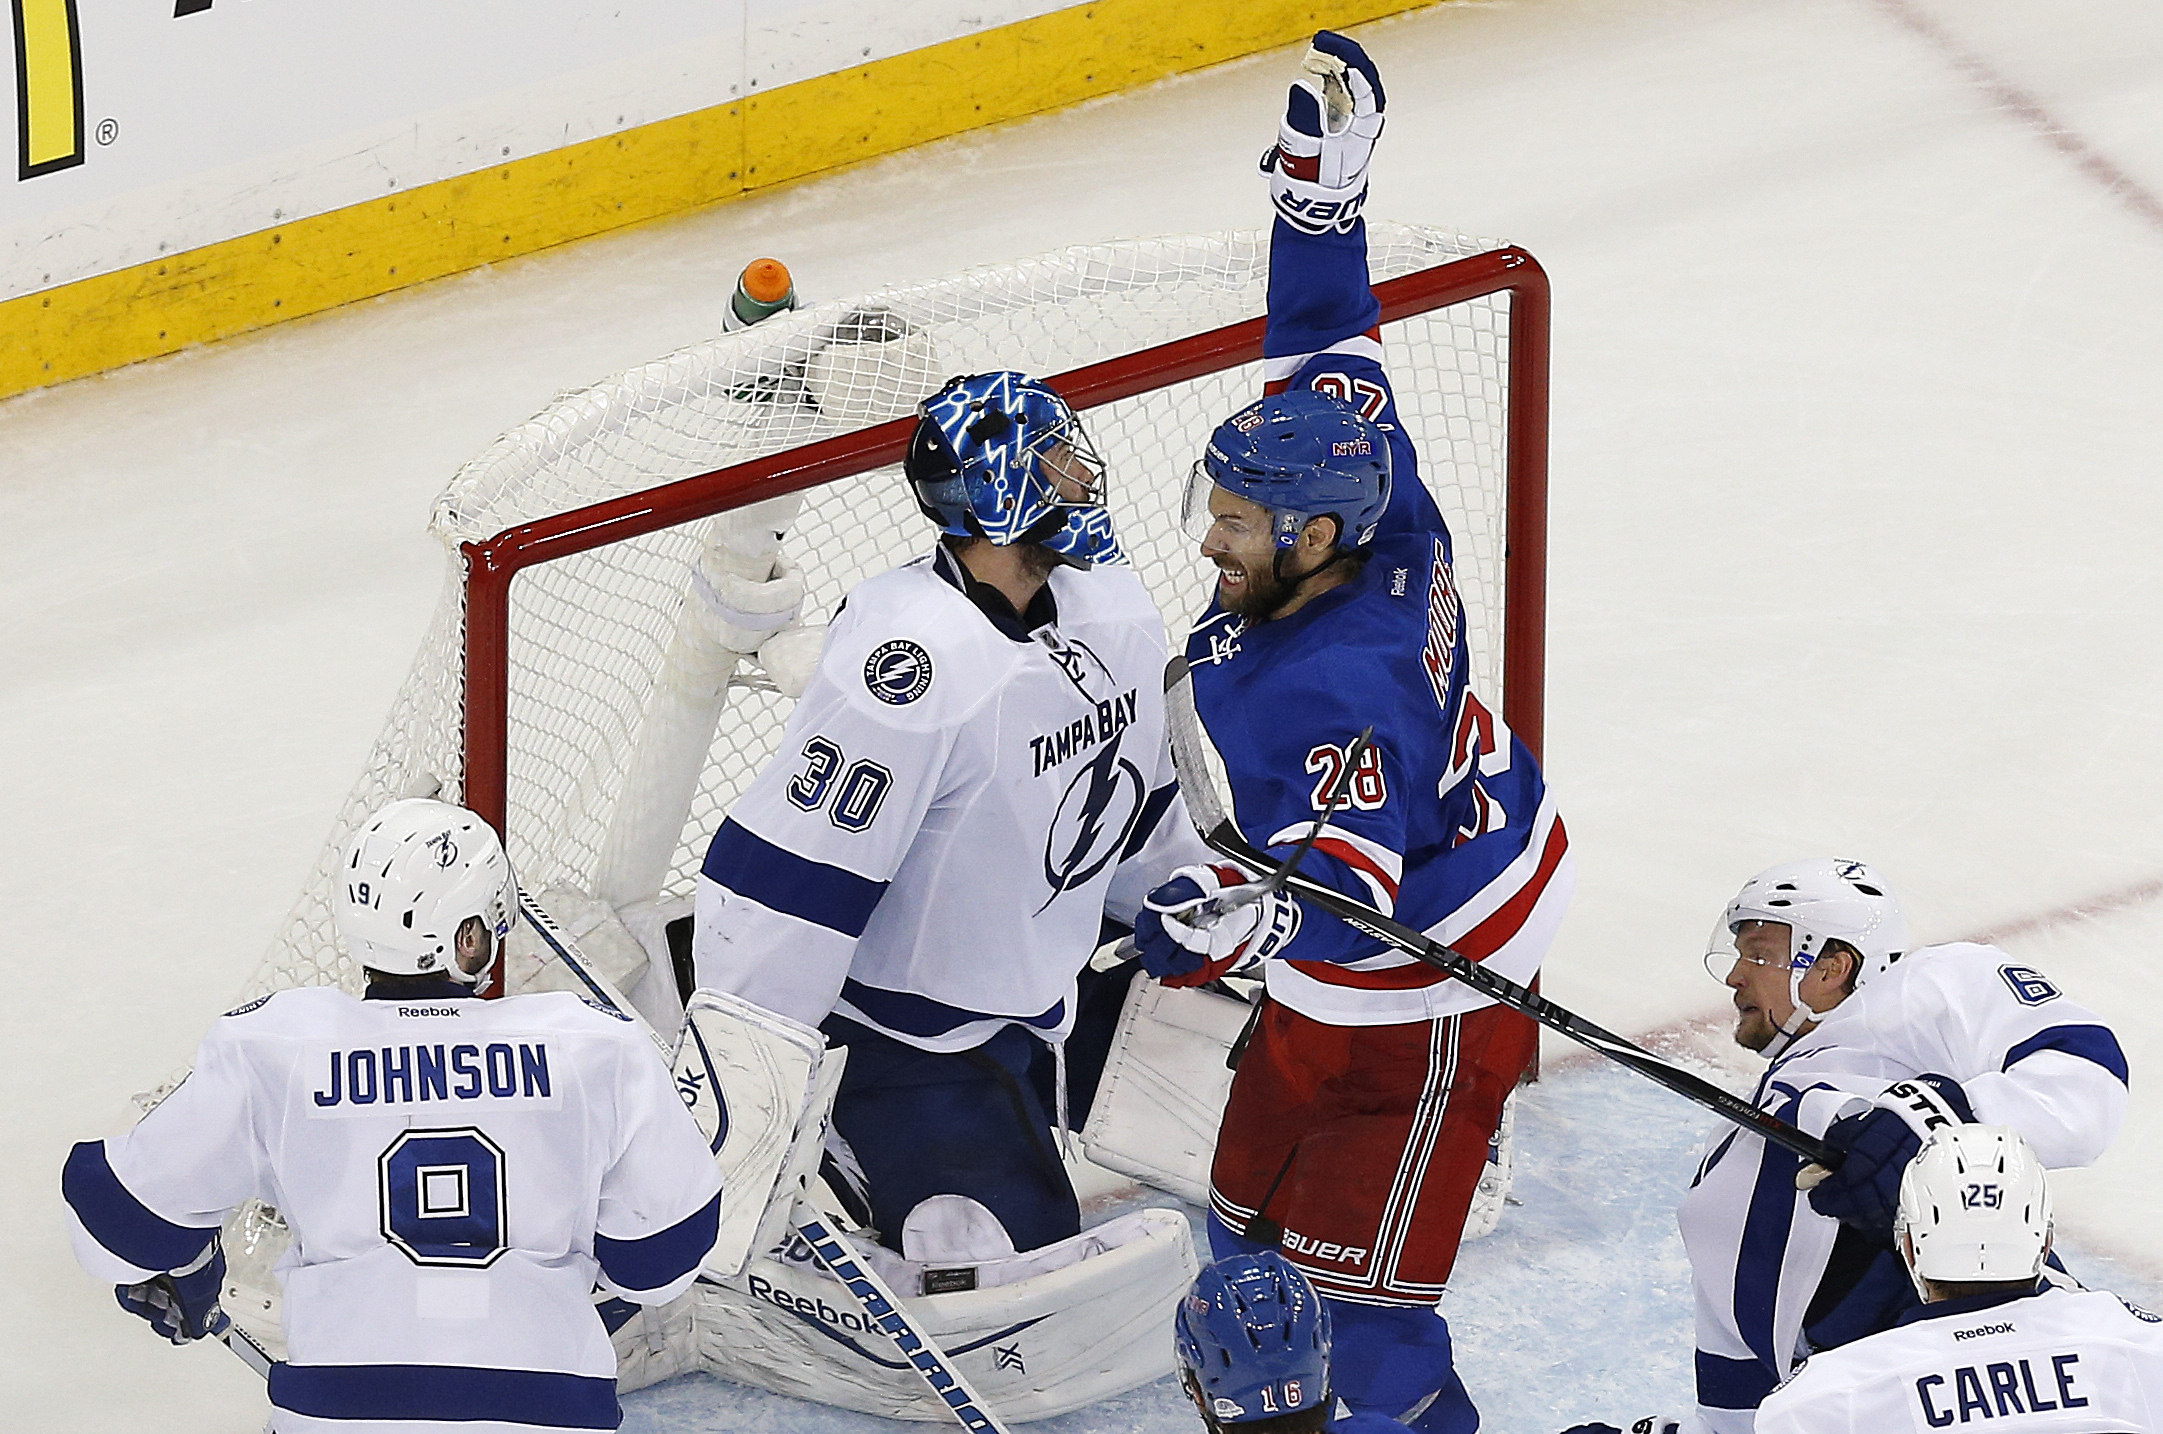 New York Rangers center Dominic Moore (28) celebrates after scoring against the Tampa Bay Lightning during the third period of Game 1 of the Eastern Conference final during the NHL hockey Stanley Cup playoffs, Saturday, May 16, 2015, in New York. The Rang